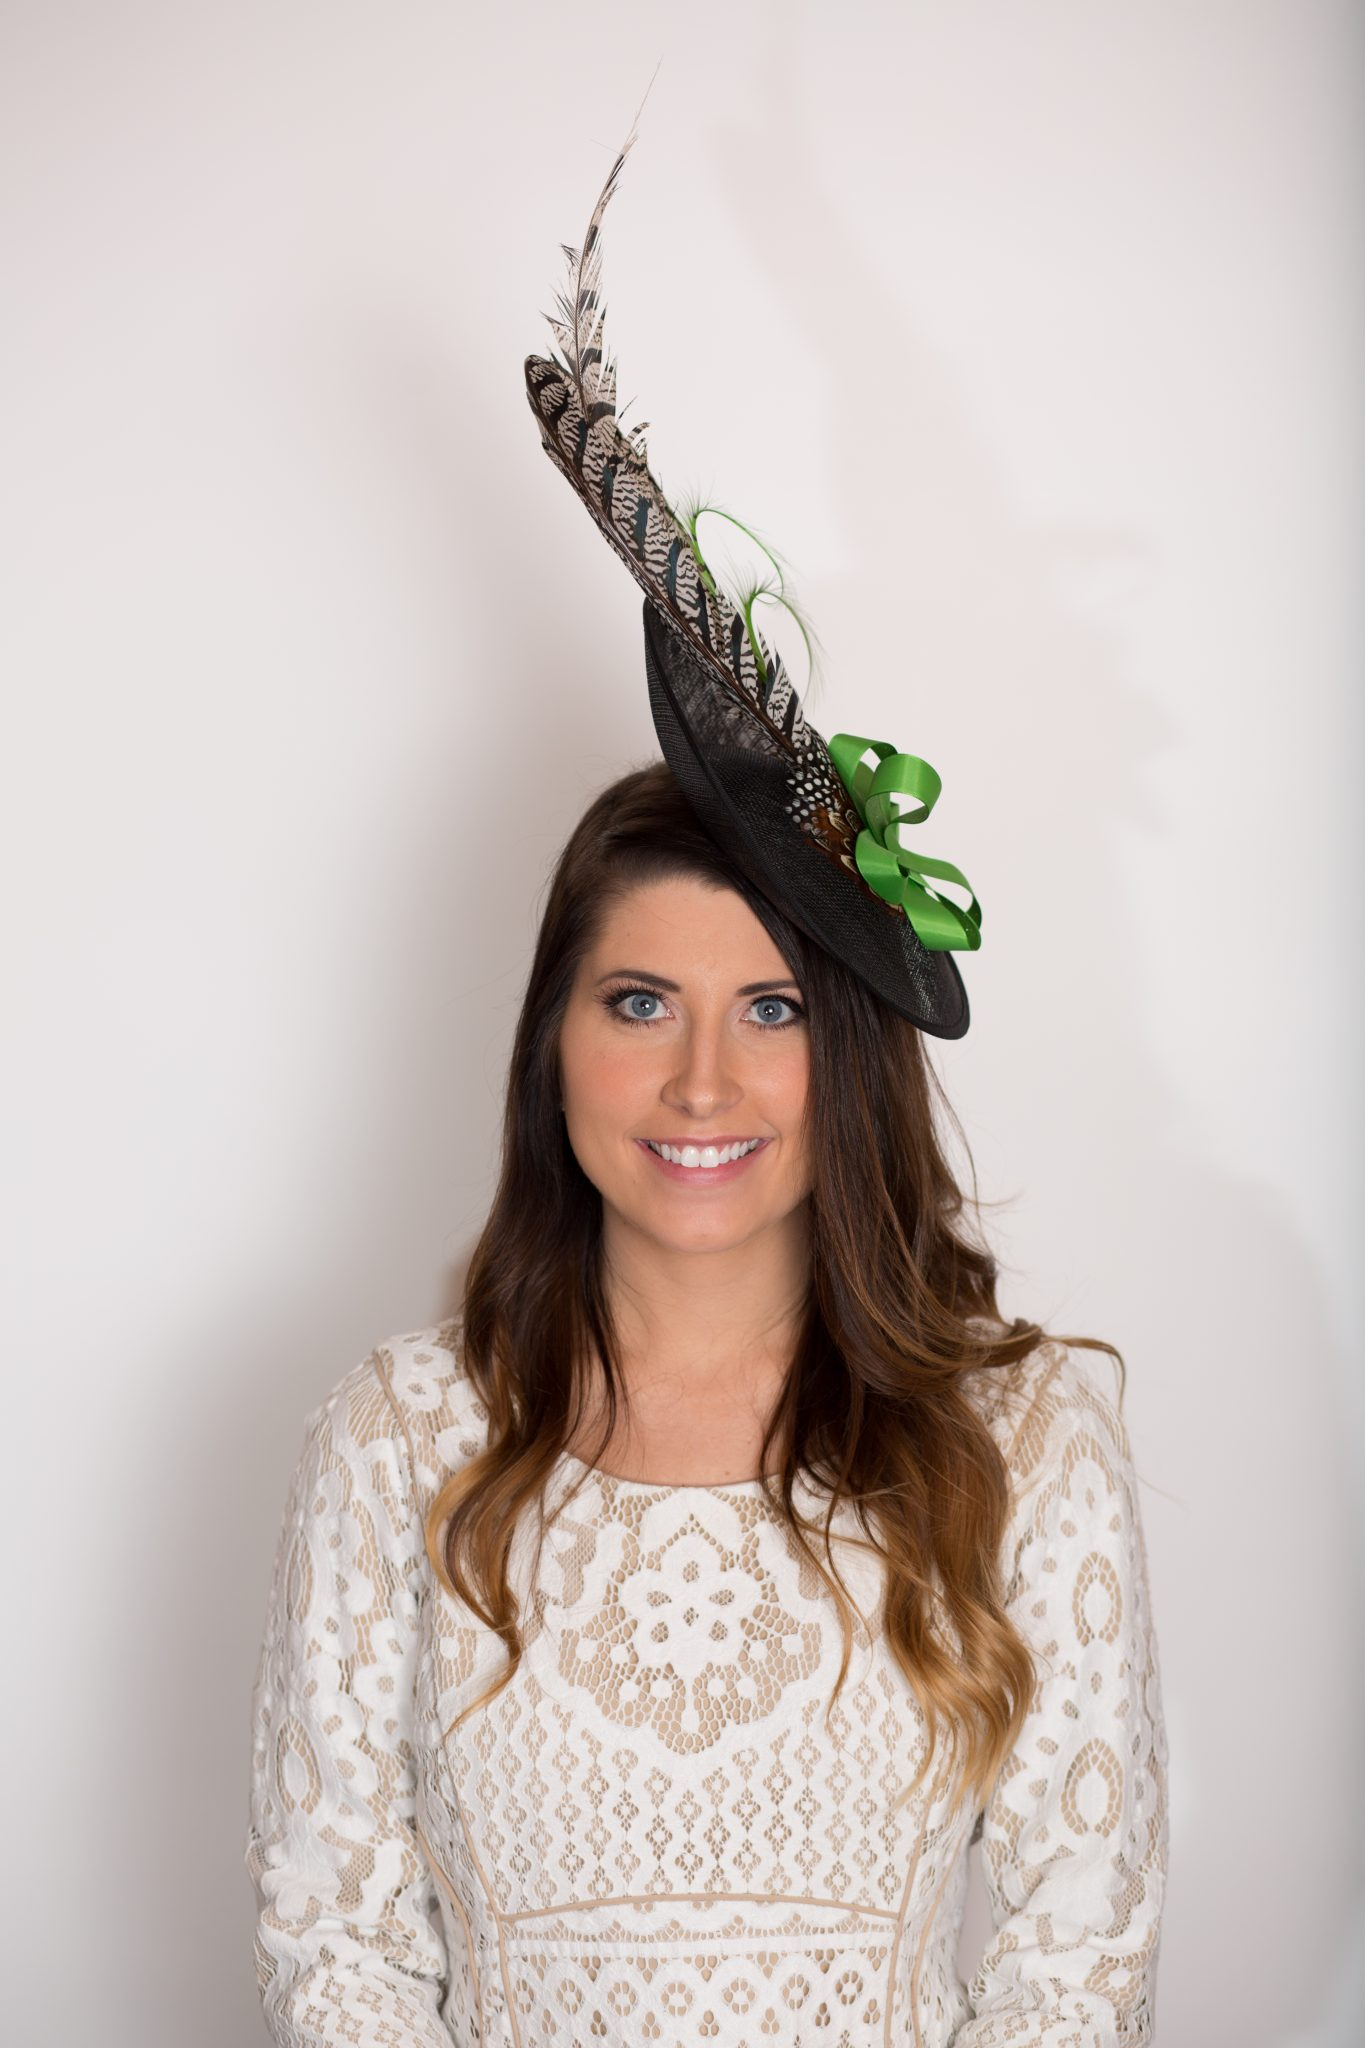 d9505a4b659 Kelly - Derby Hats by Polly Singer Couture Hat